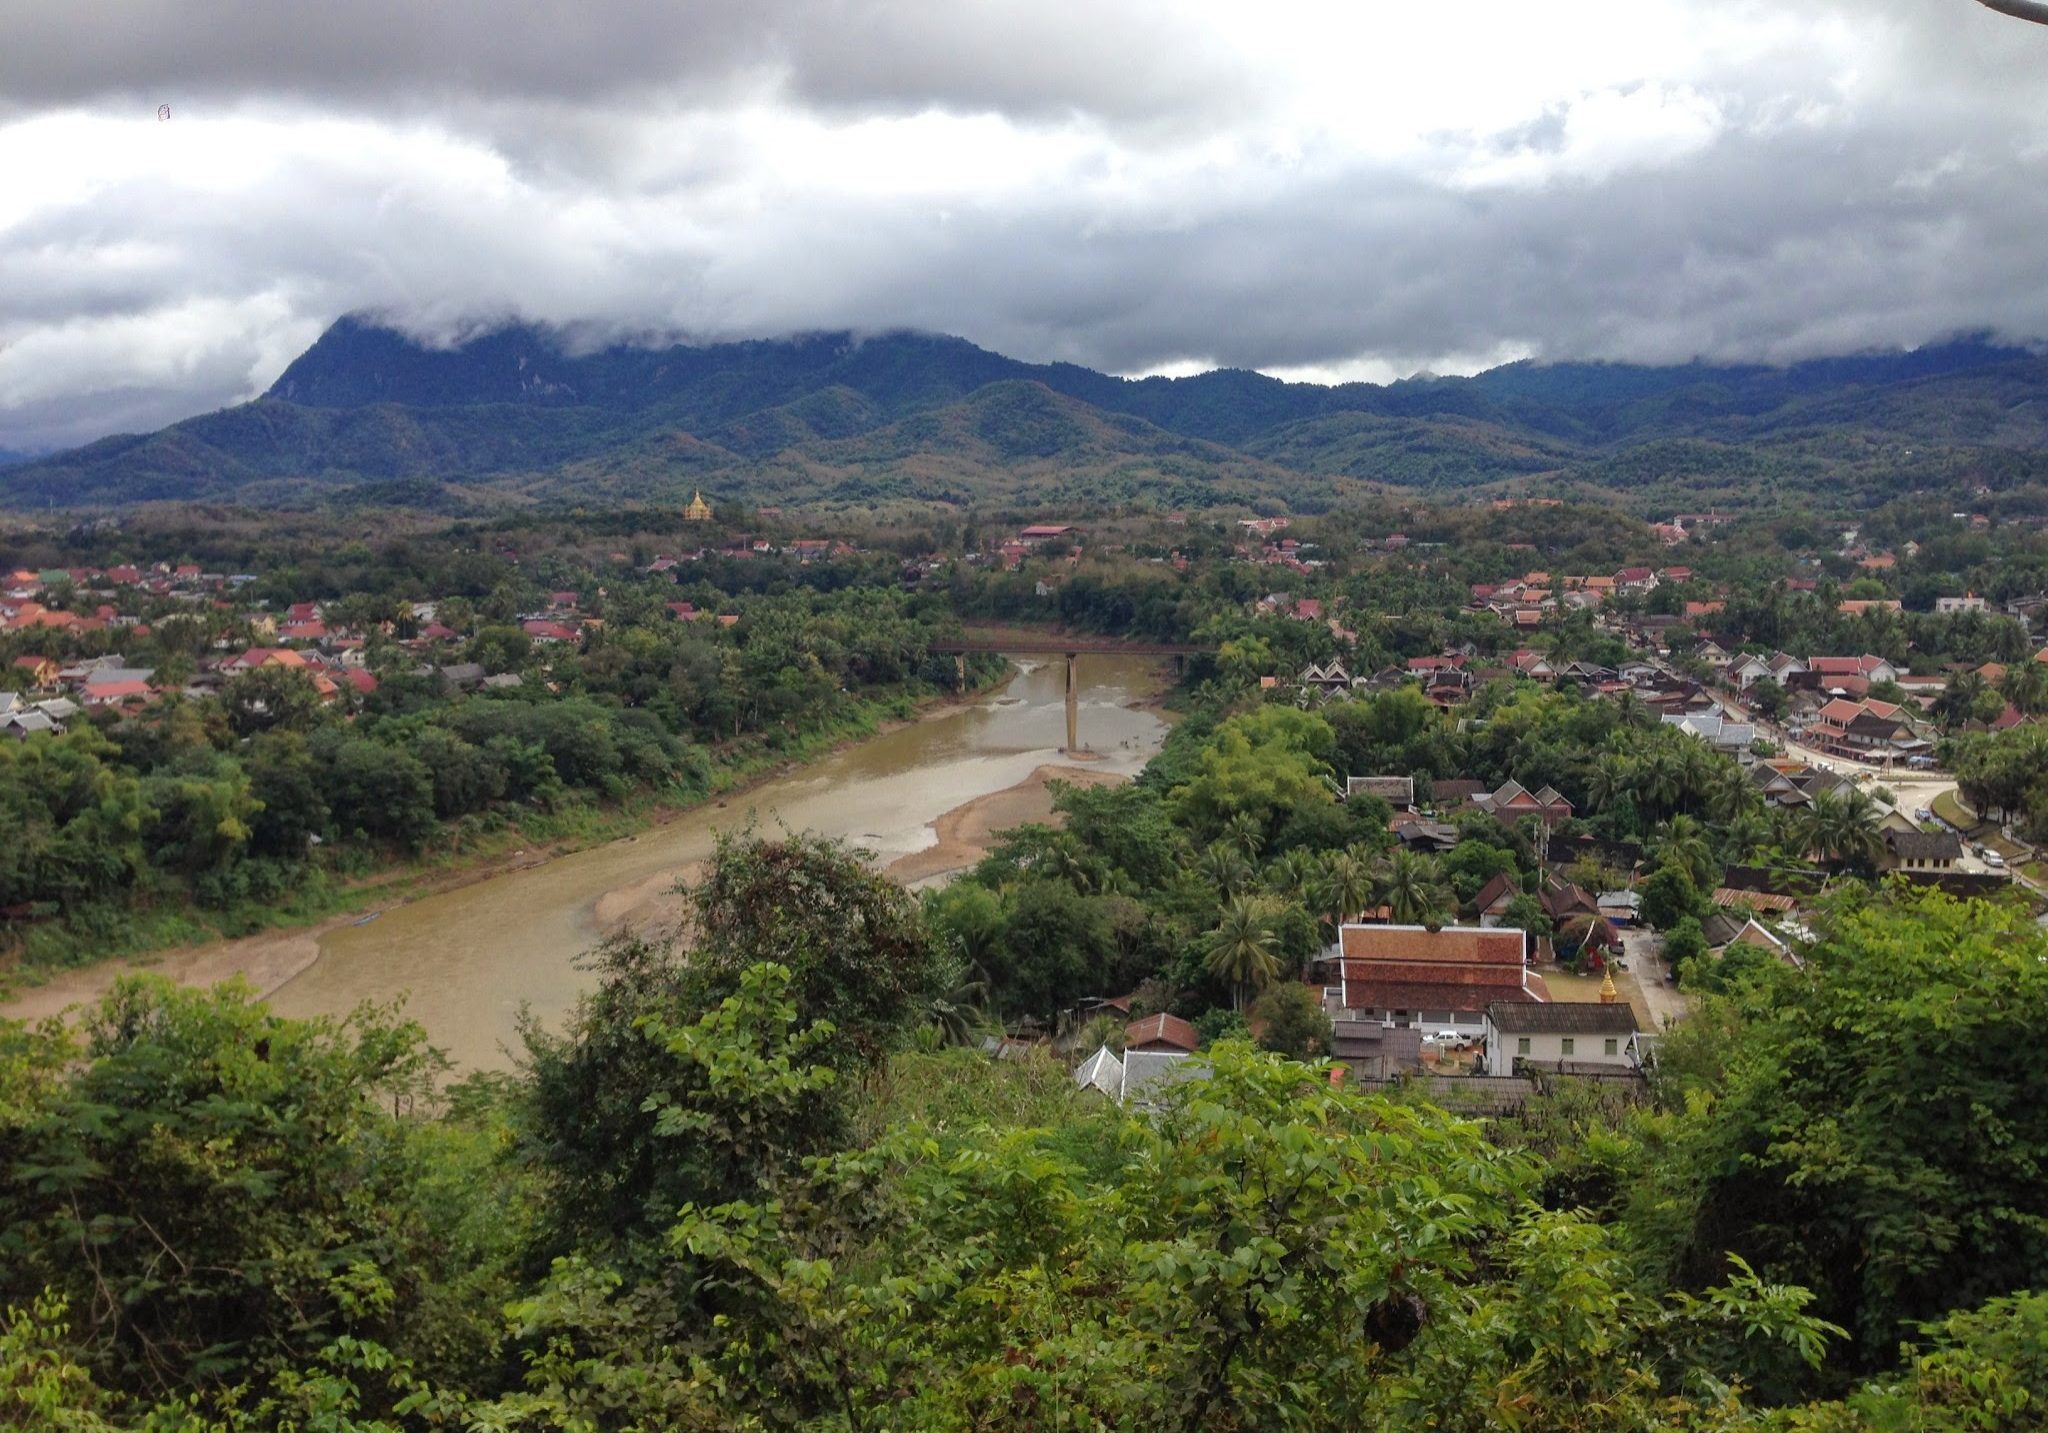 Luang Prabang, laos, mekong, travels, backpacking, travelling, south east asia, asia, mountains, forest, river,